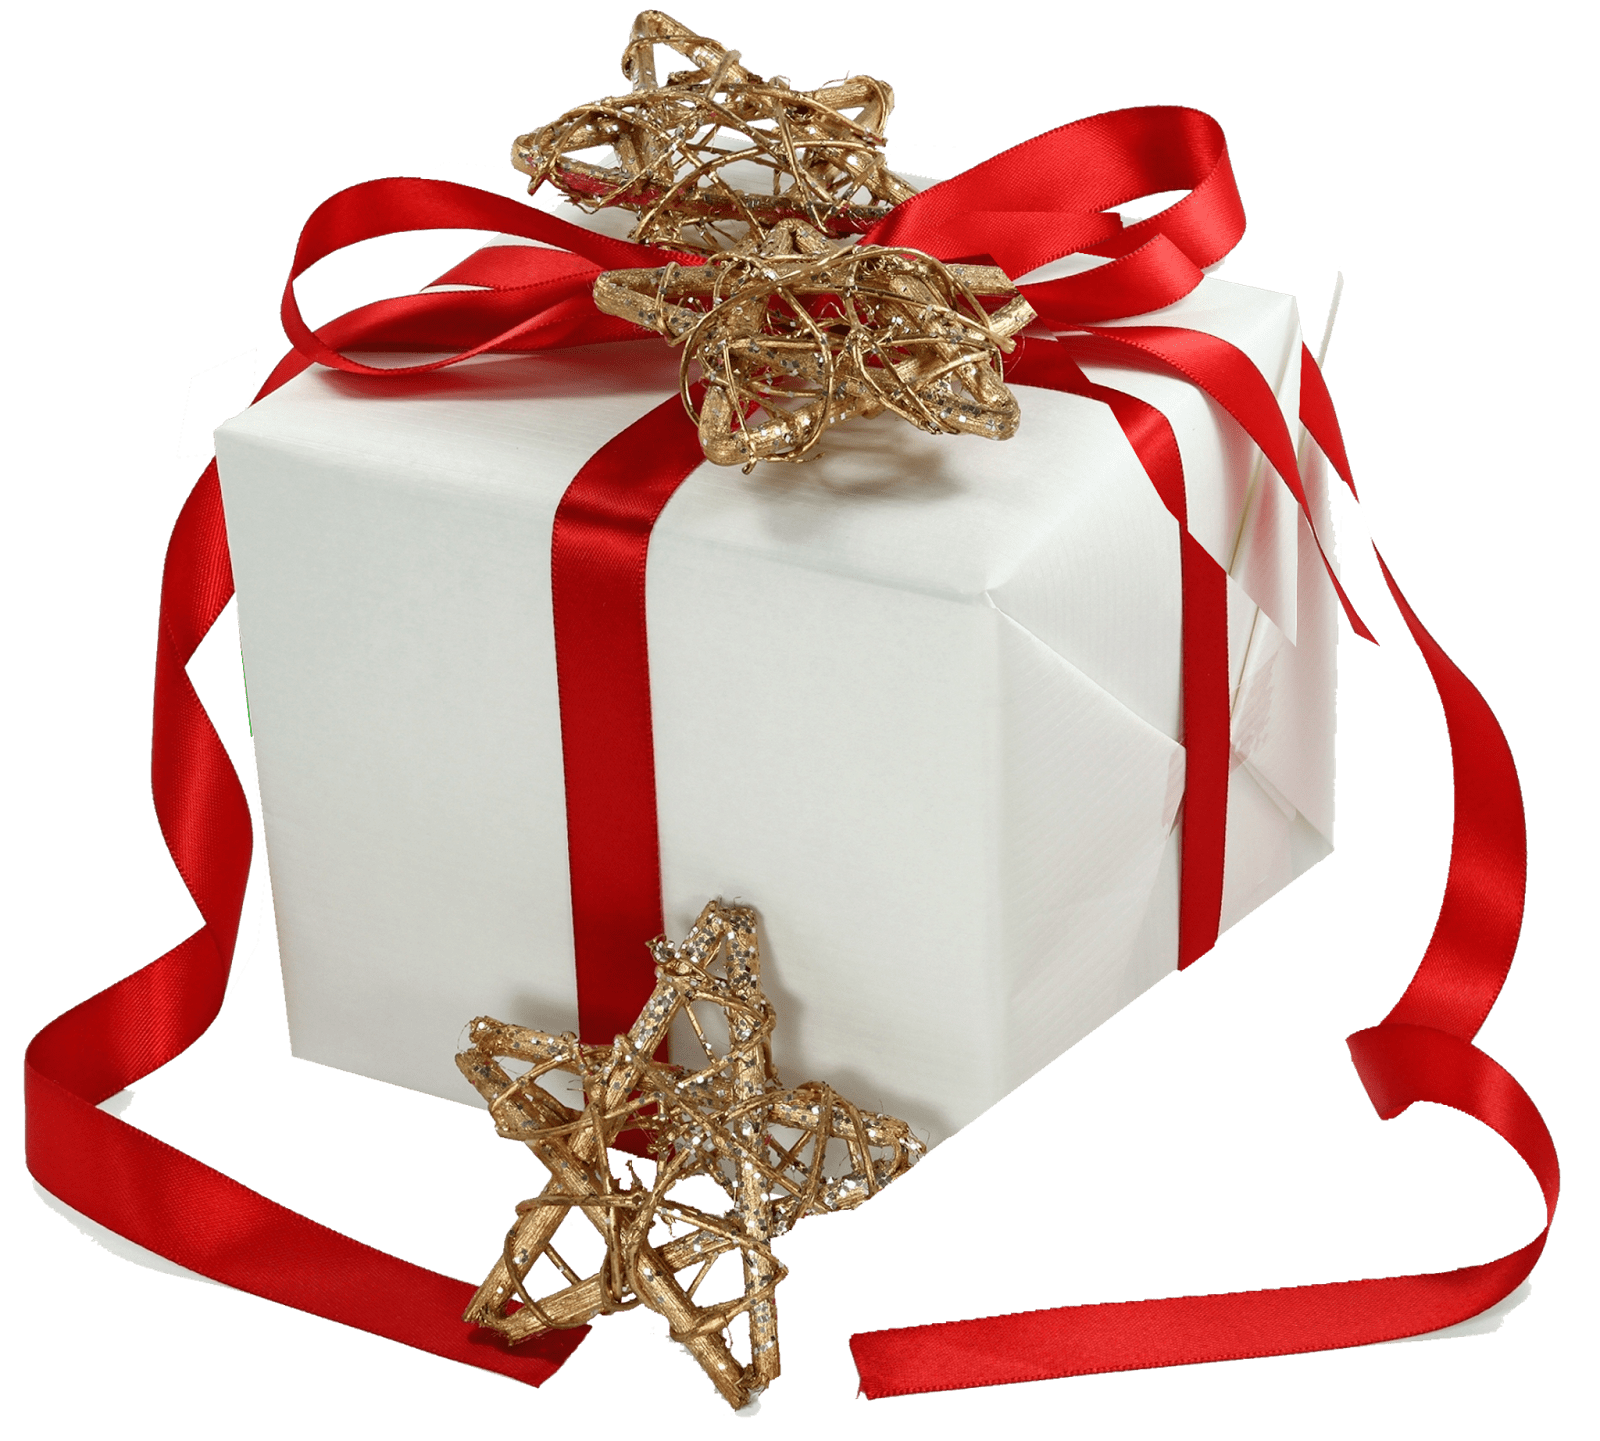 Christmas gift wrapping clipart jpg royalty free library Christmas Gift Ribbon Gold Stars transparent PNG - StickPNG jpg royalty free library